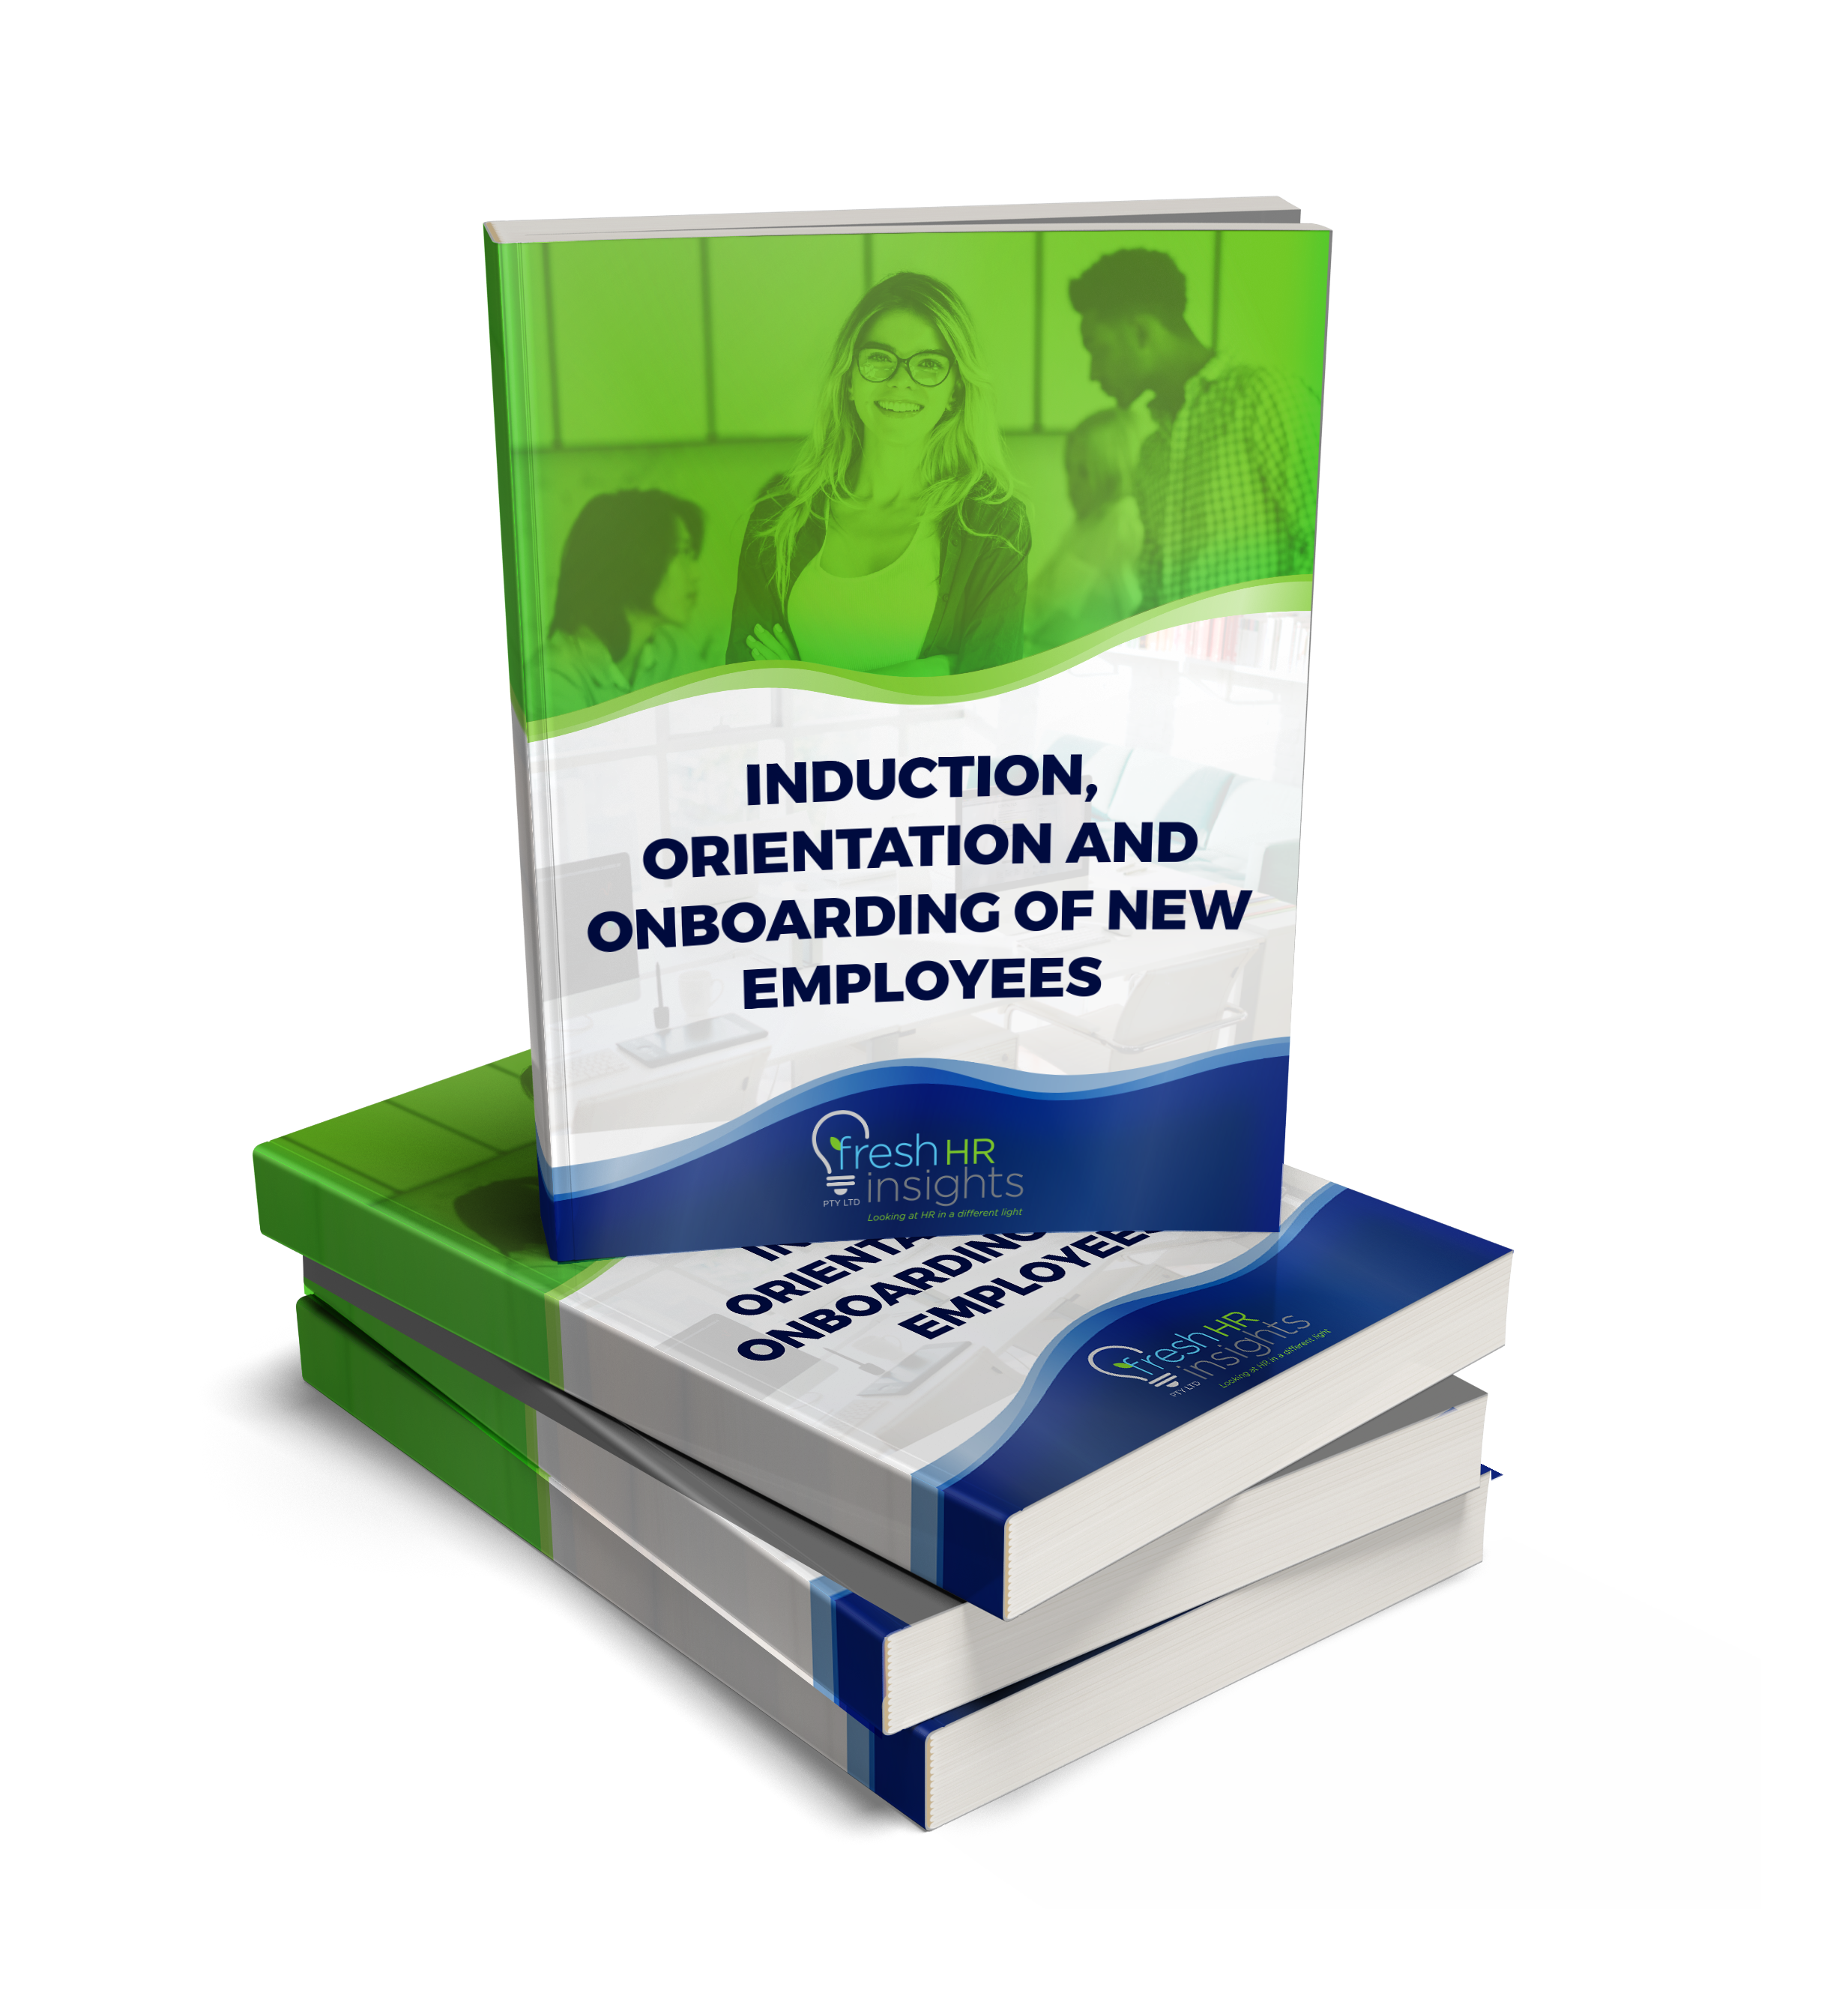 Induction Orientation and Onboarding Cover - When It's Time to Bring Employees on Board